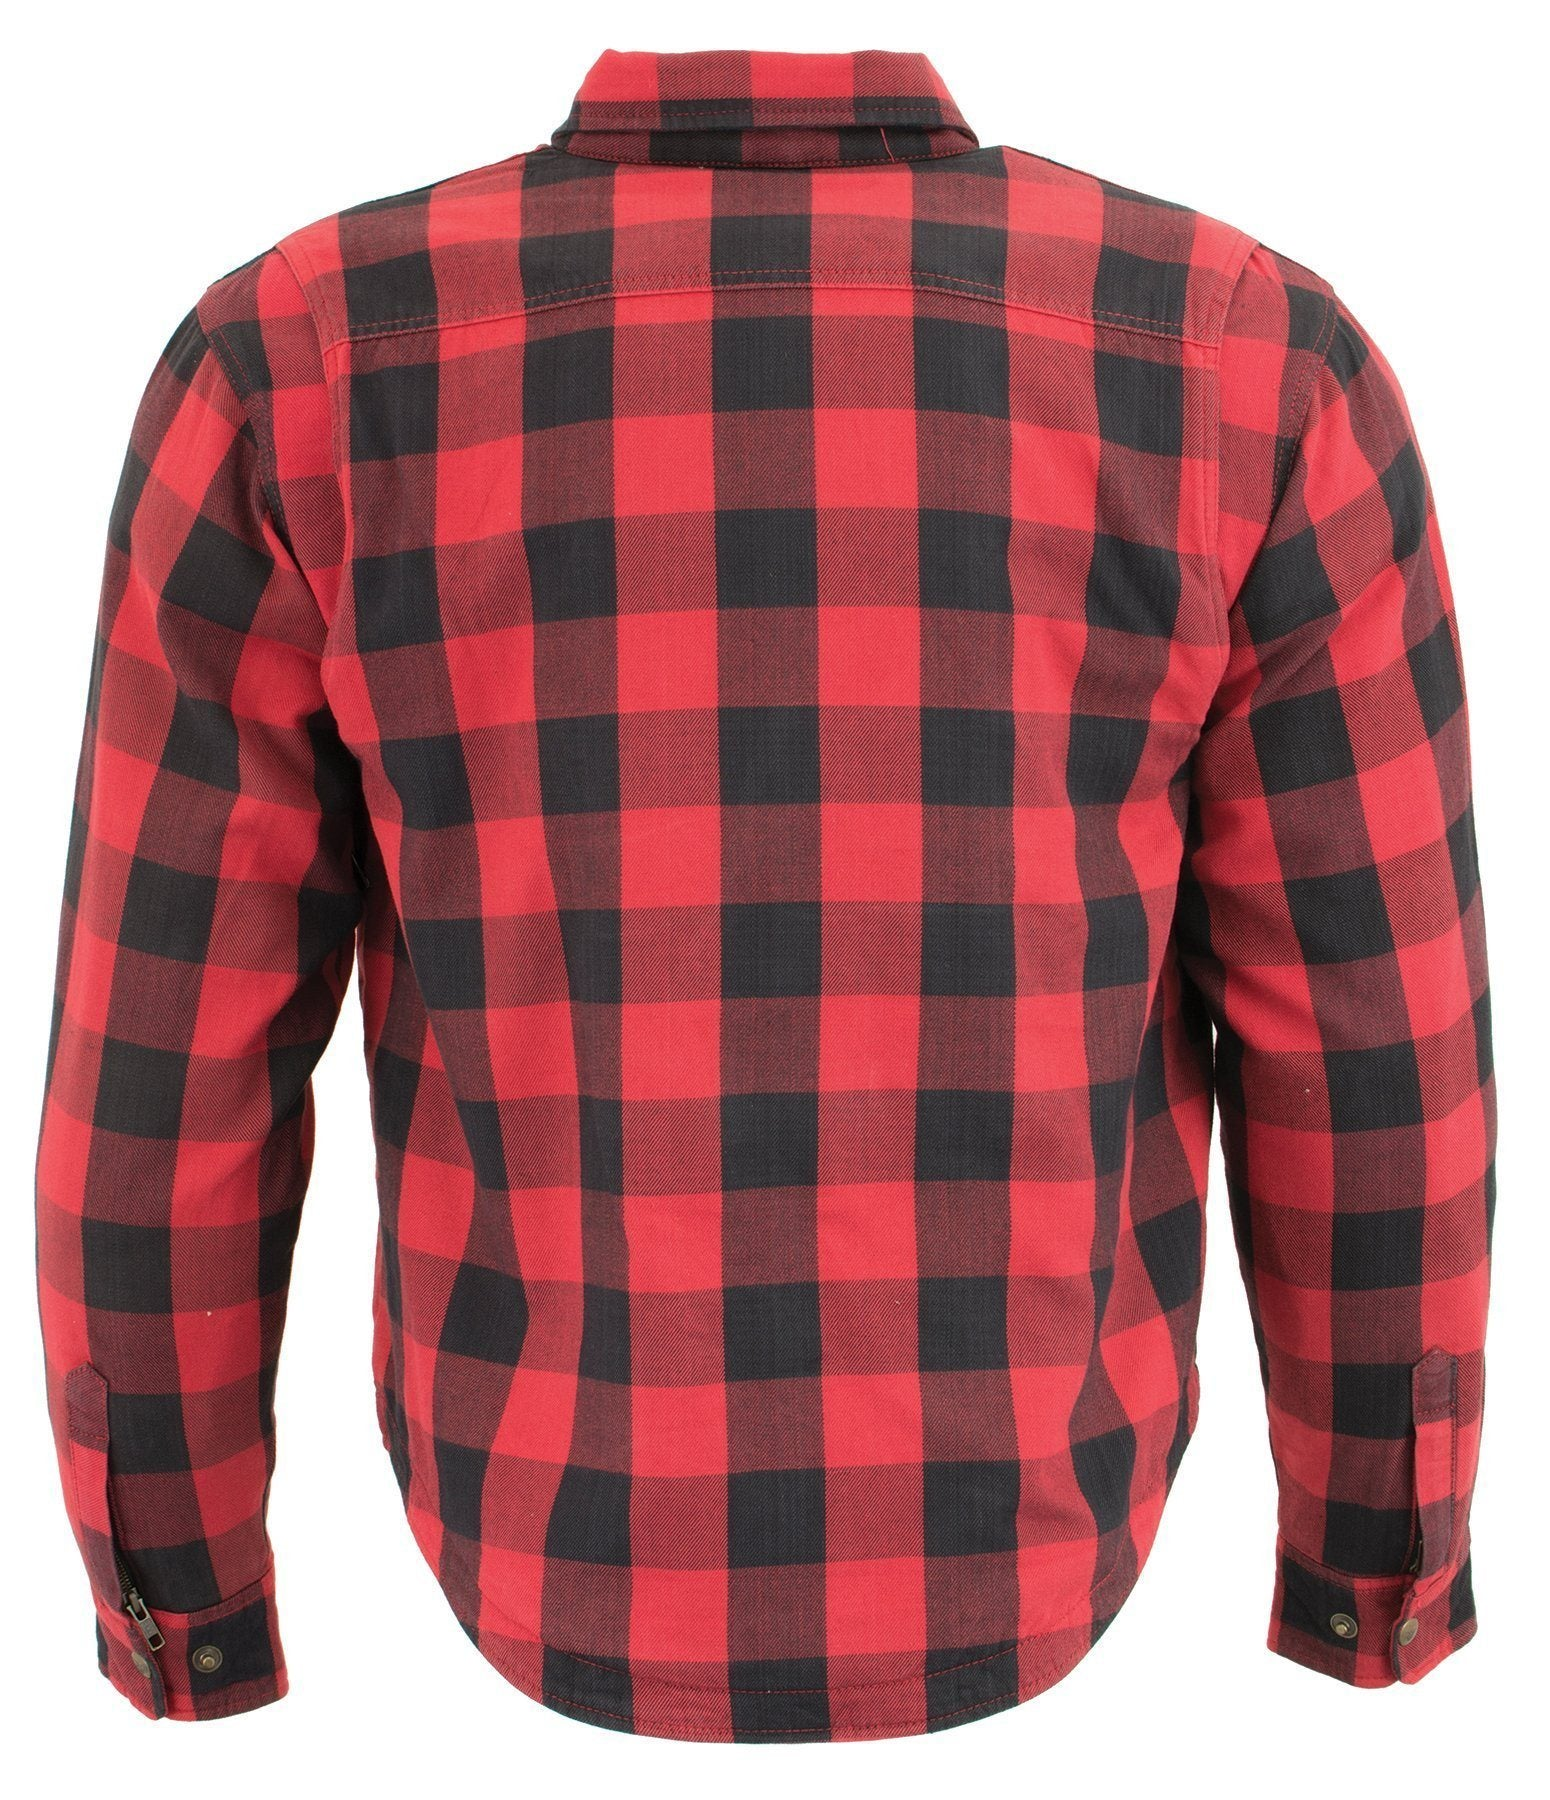 Milwaukee Performance-MPM1631-Men's Black and Red Armored Checkered Flannel Biker Shirt w/ Aramid® by DuPont™ Fibers